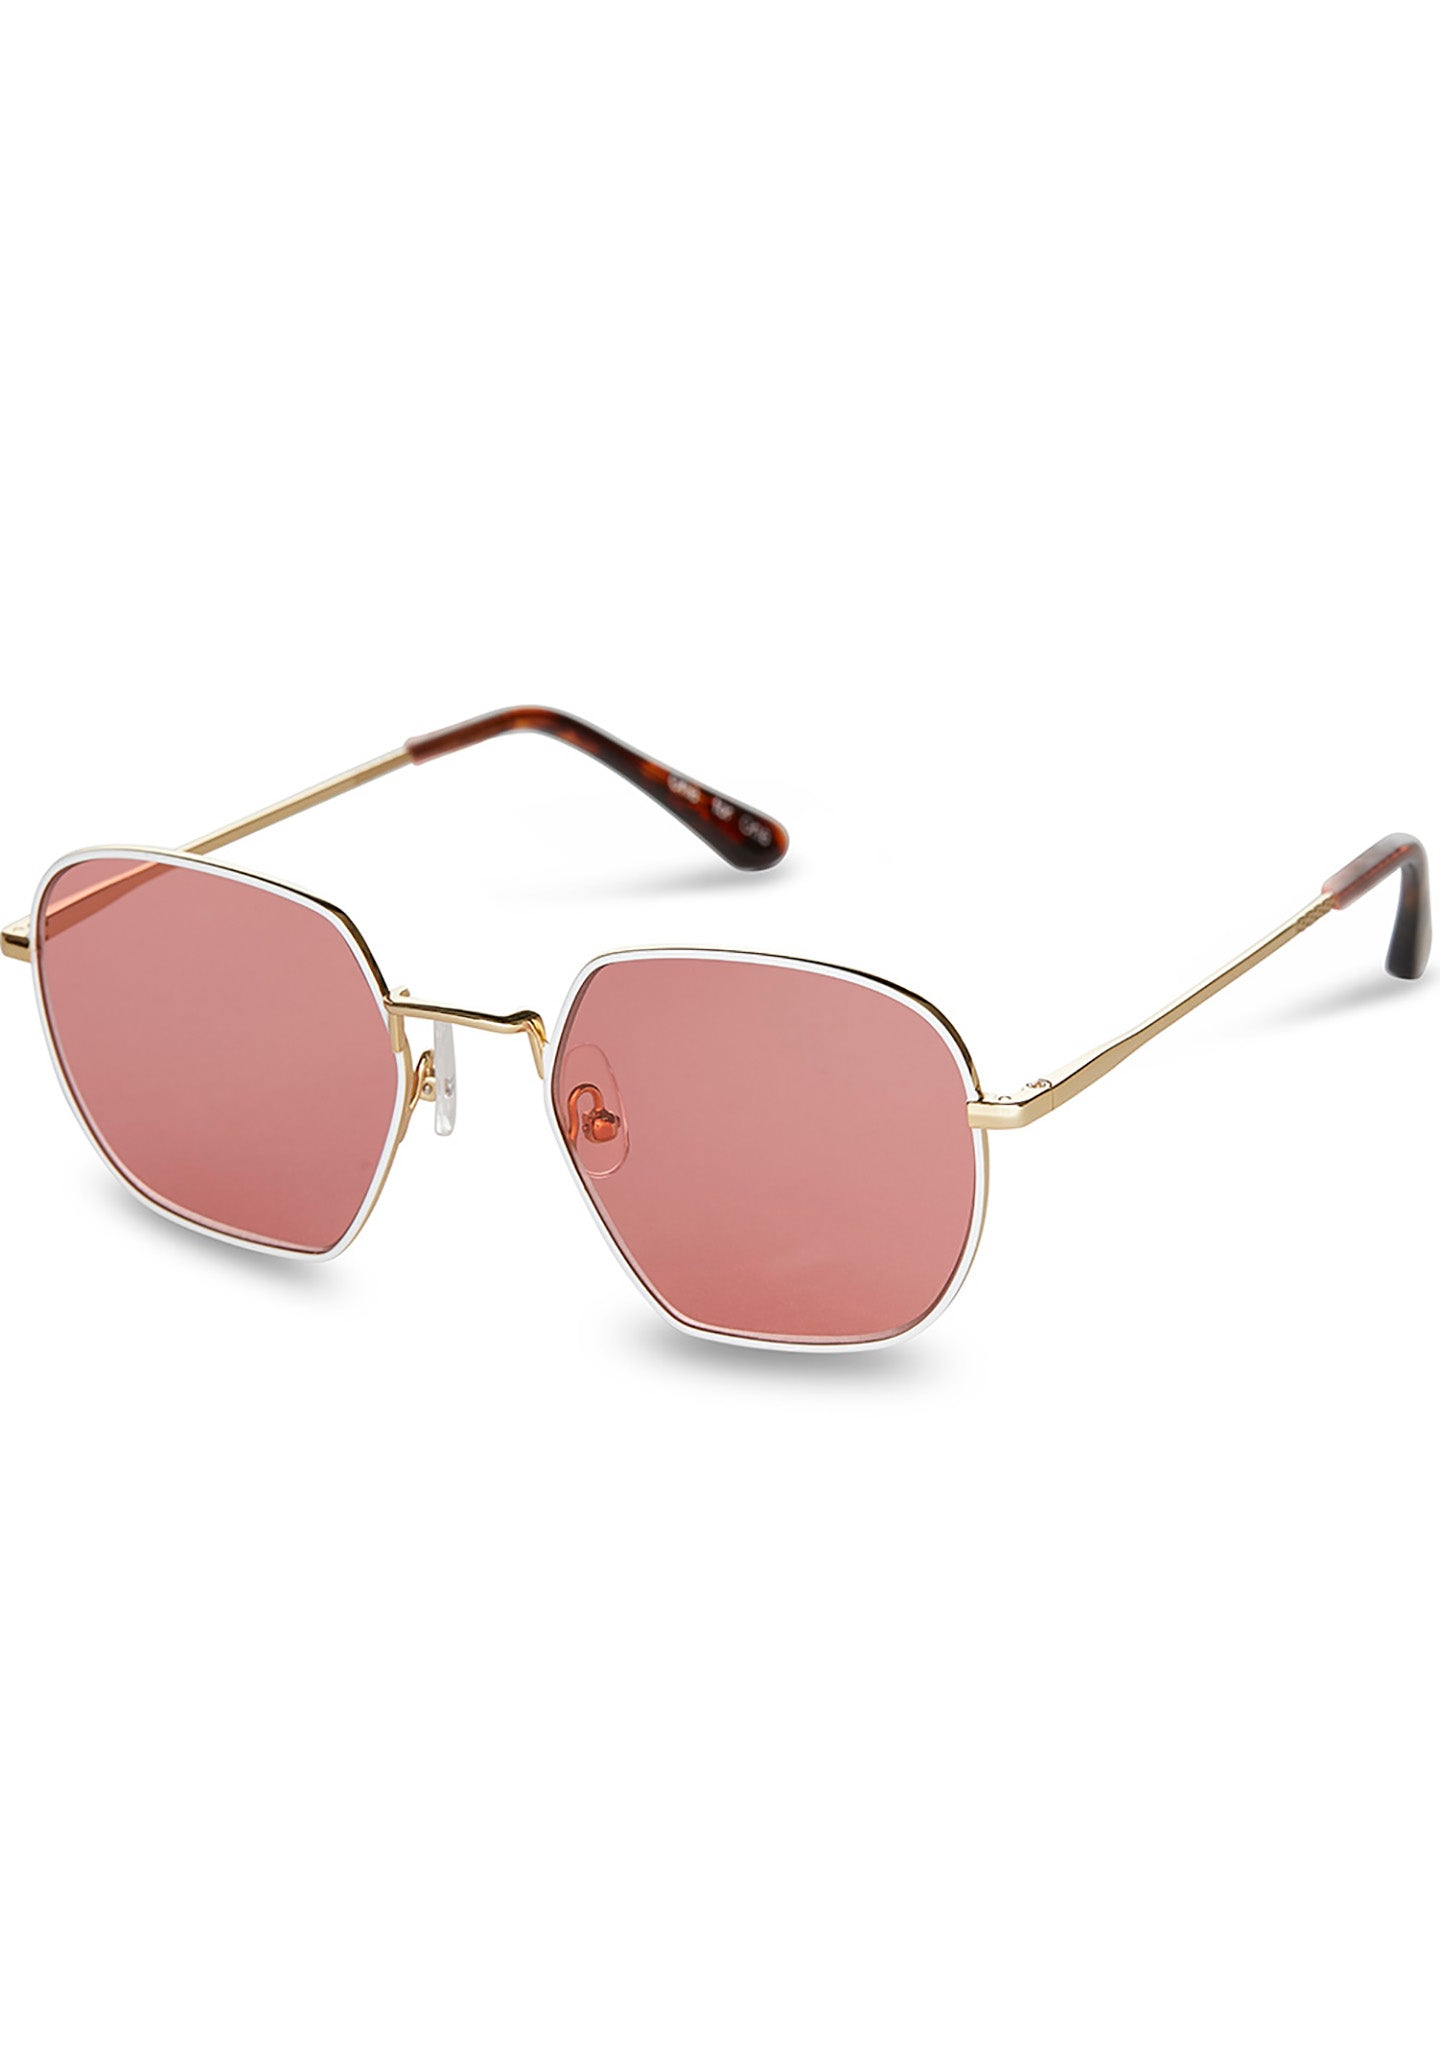 Sawyer Sunglasses in Shiny Gold/Cherry